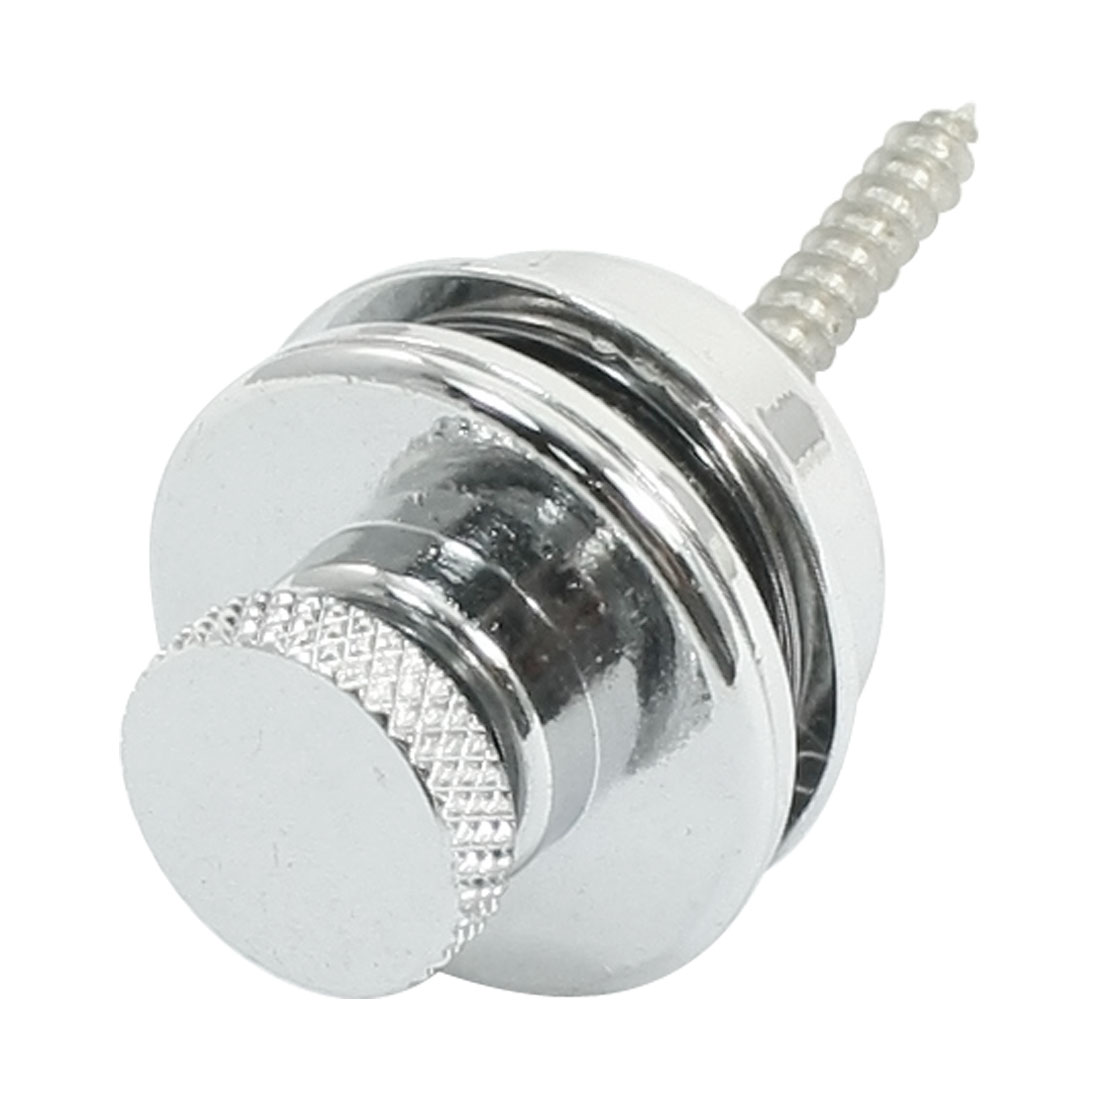 Strap Metal Safety Lock Button Nails Set Silver Tone for Electric Guitar